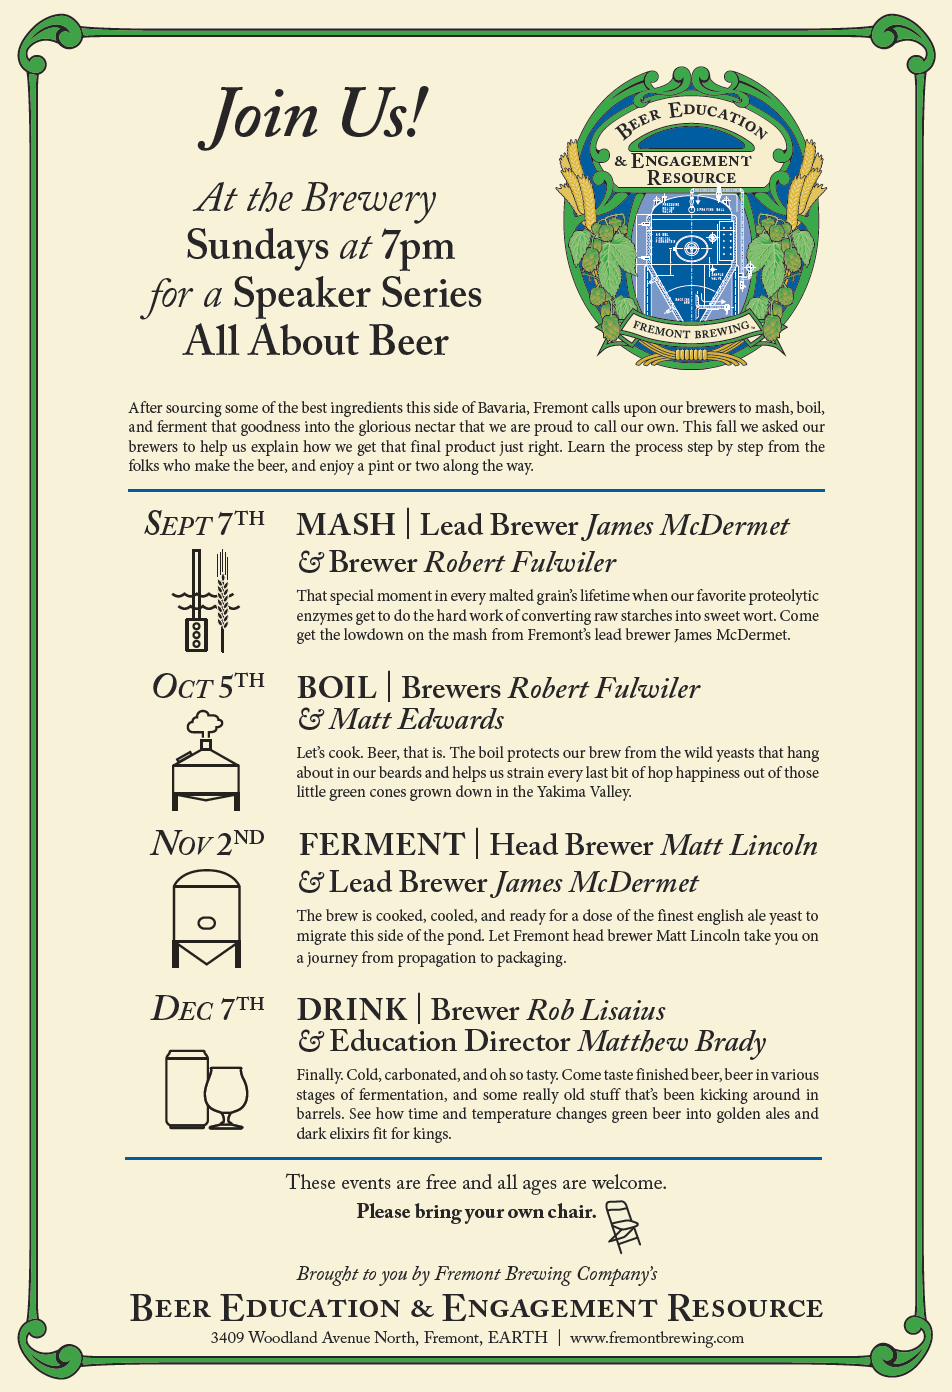 """image of Fremont's Speaker Series """"All About Beer"""" courtesy Fremont Brewing Company"""